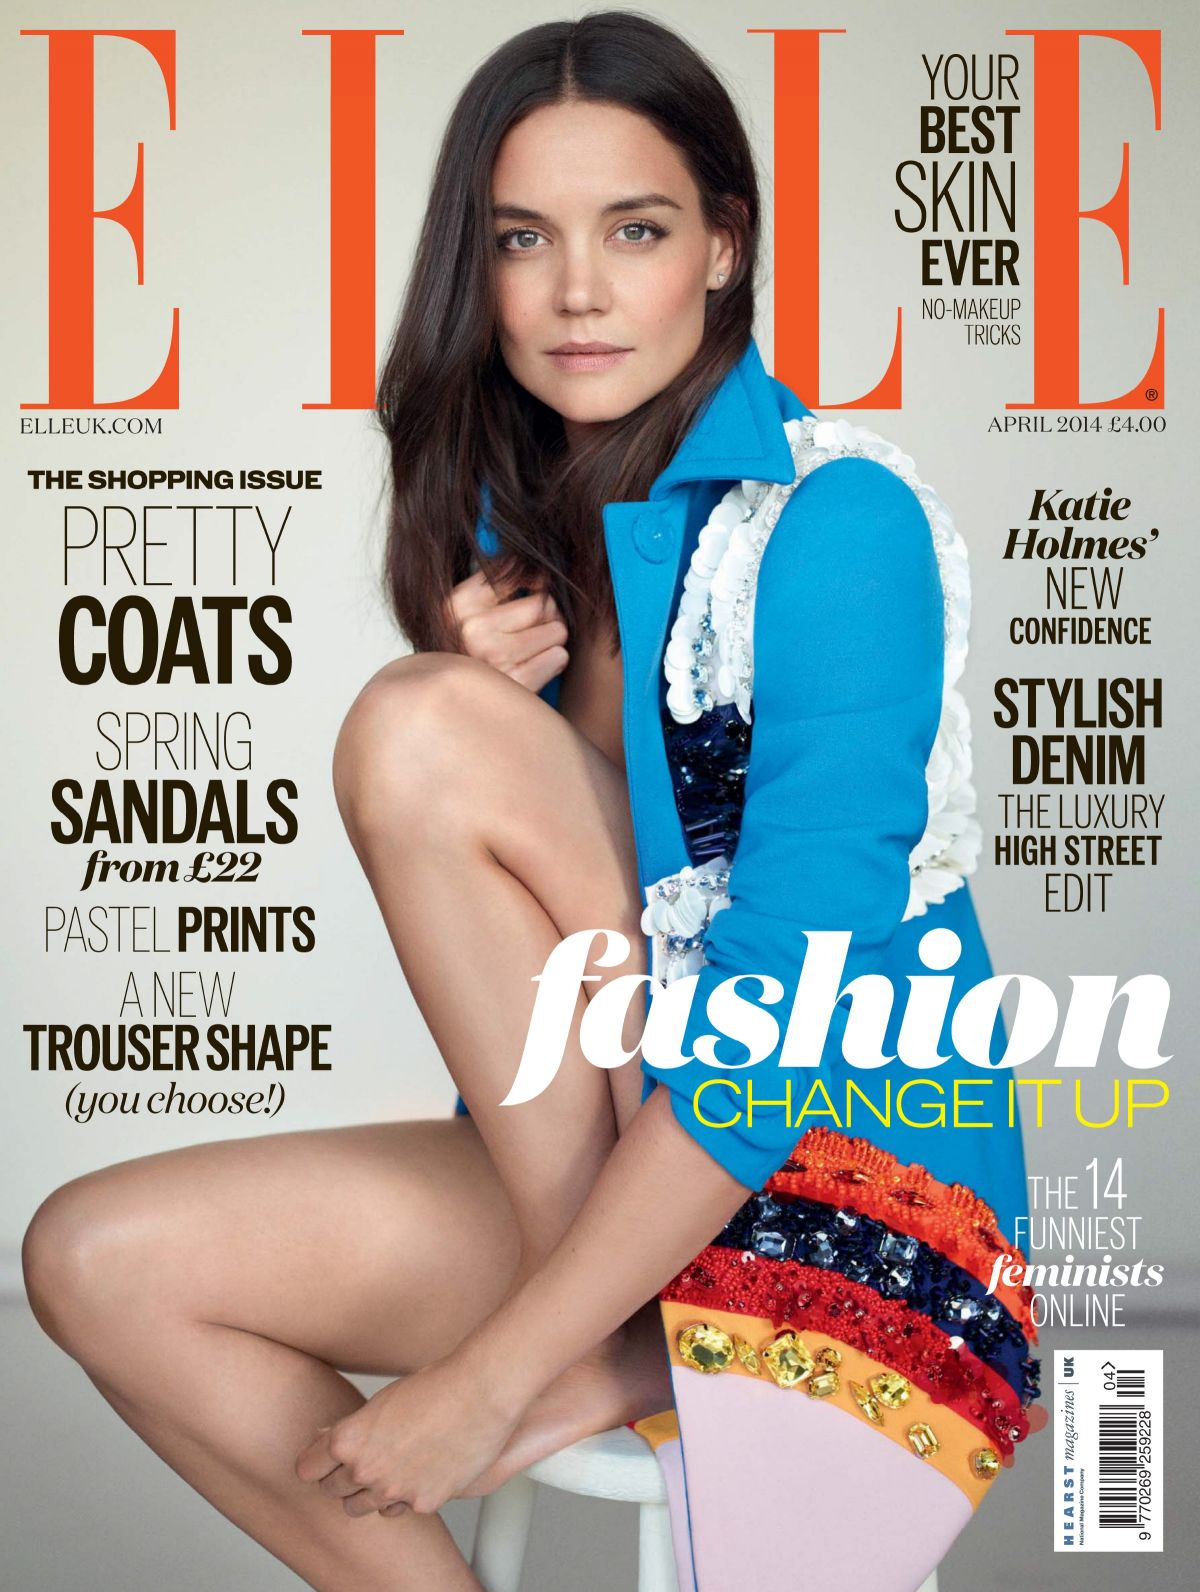 KATIE HOLMES on the Cover of Elle Magazine, April 2014 Issue